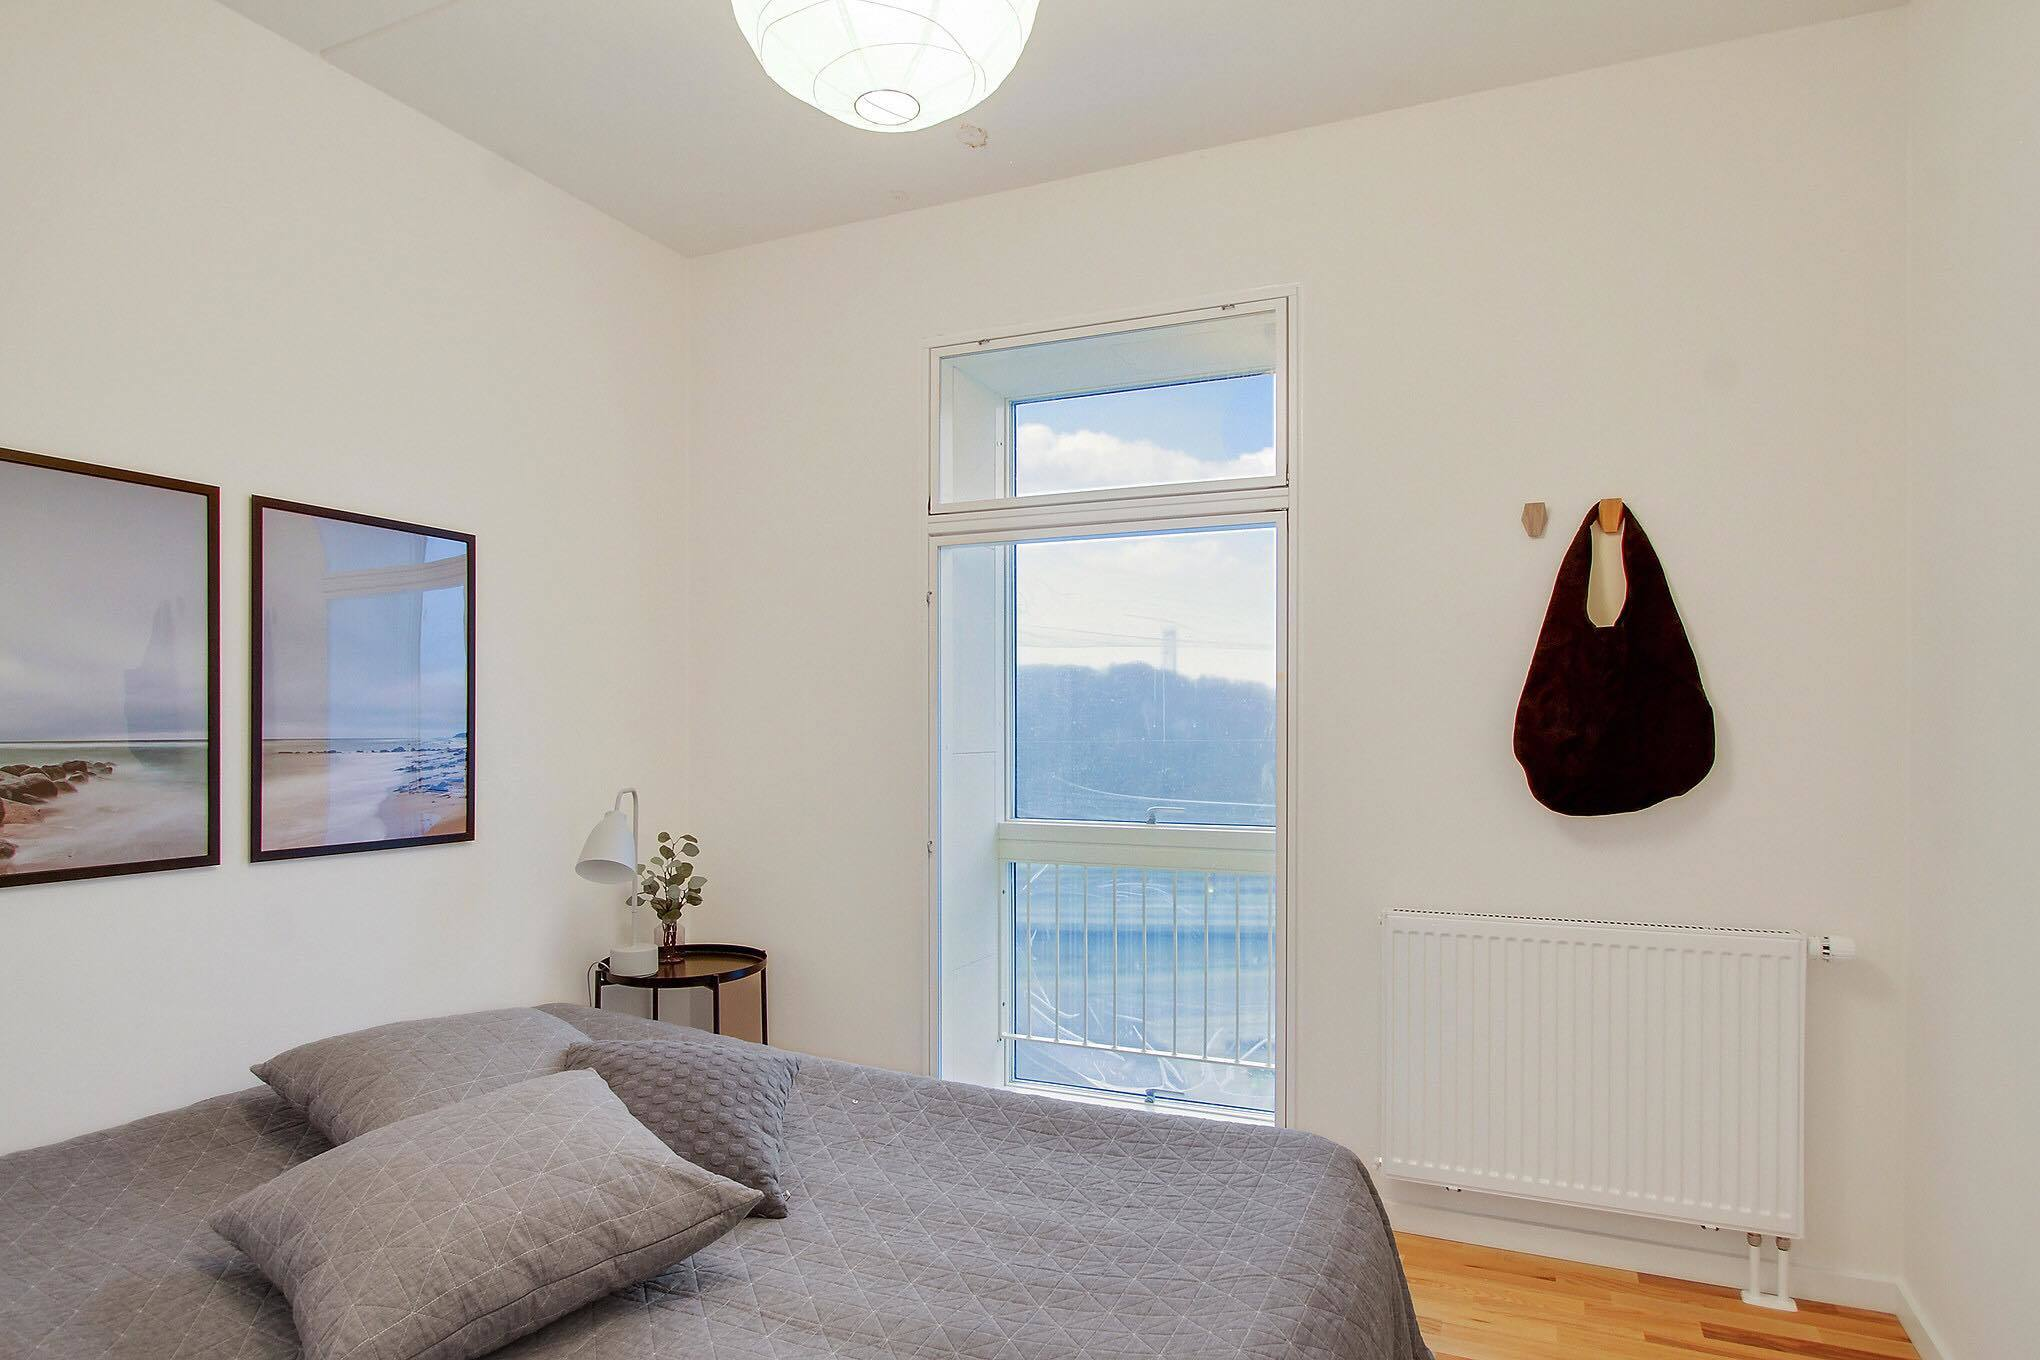 Room centrally located in Aalborg for rent